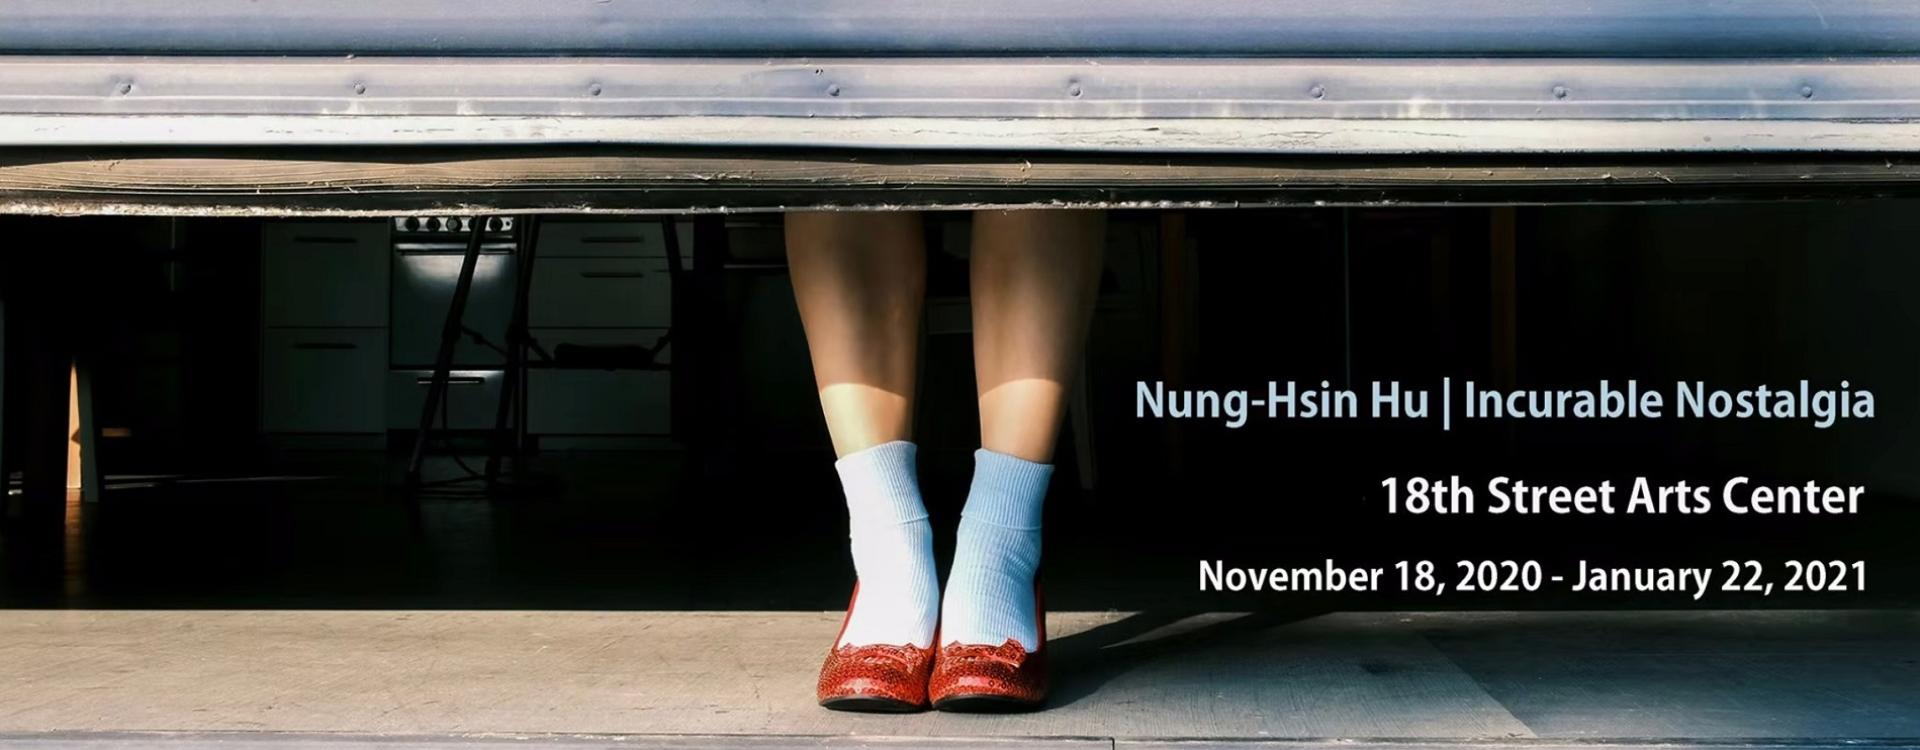 Taiwan Artist Nung-Hsin Hu Explores Her Incurable Nostalgia in New Exhibition at 18th Street Arts Center「另開新視窗」